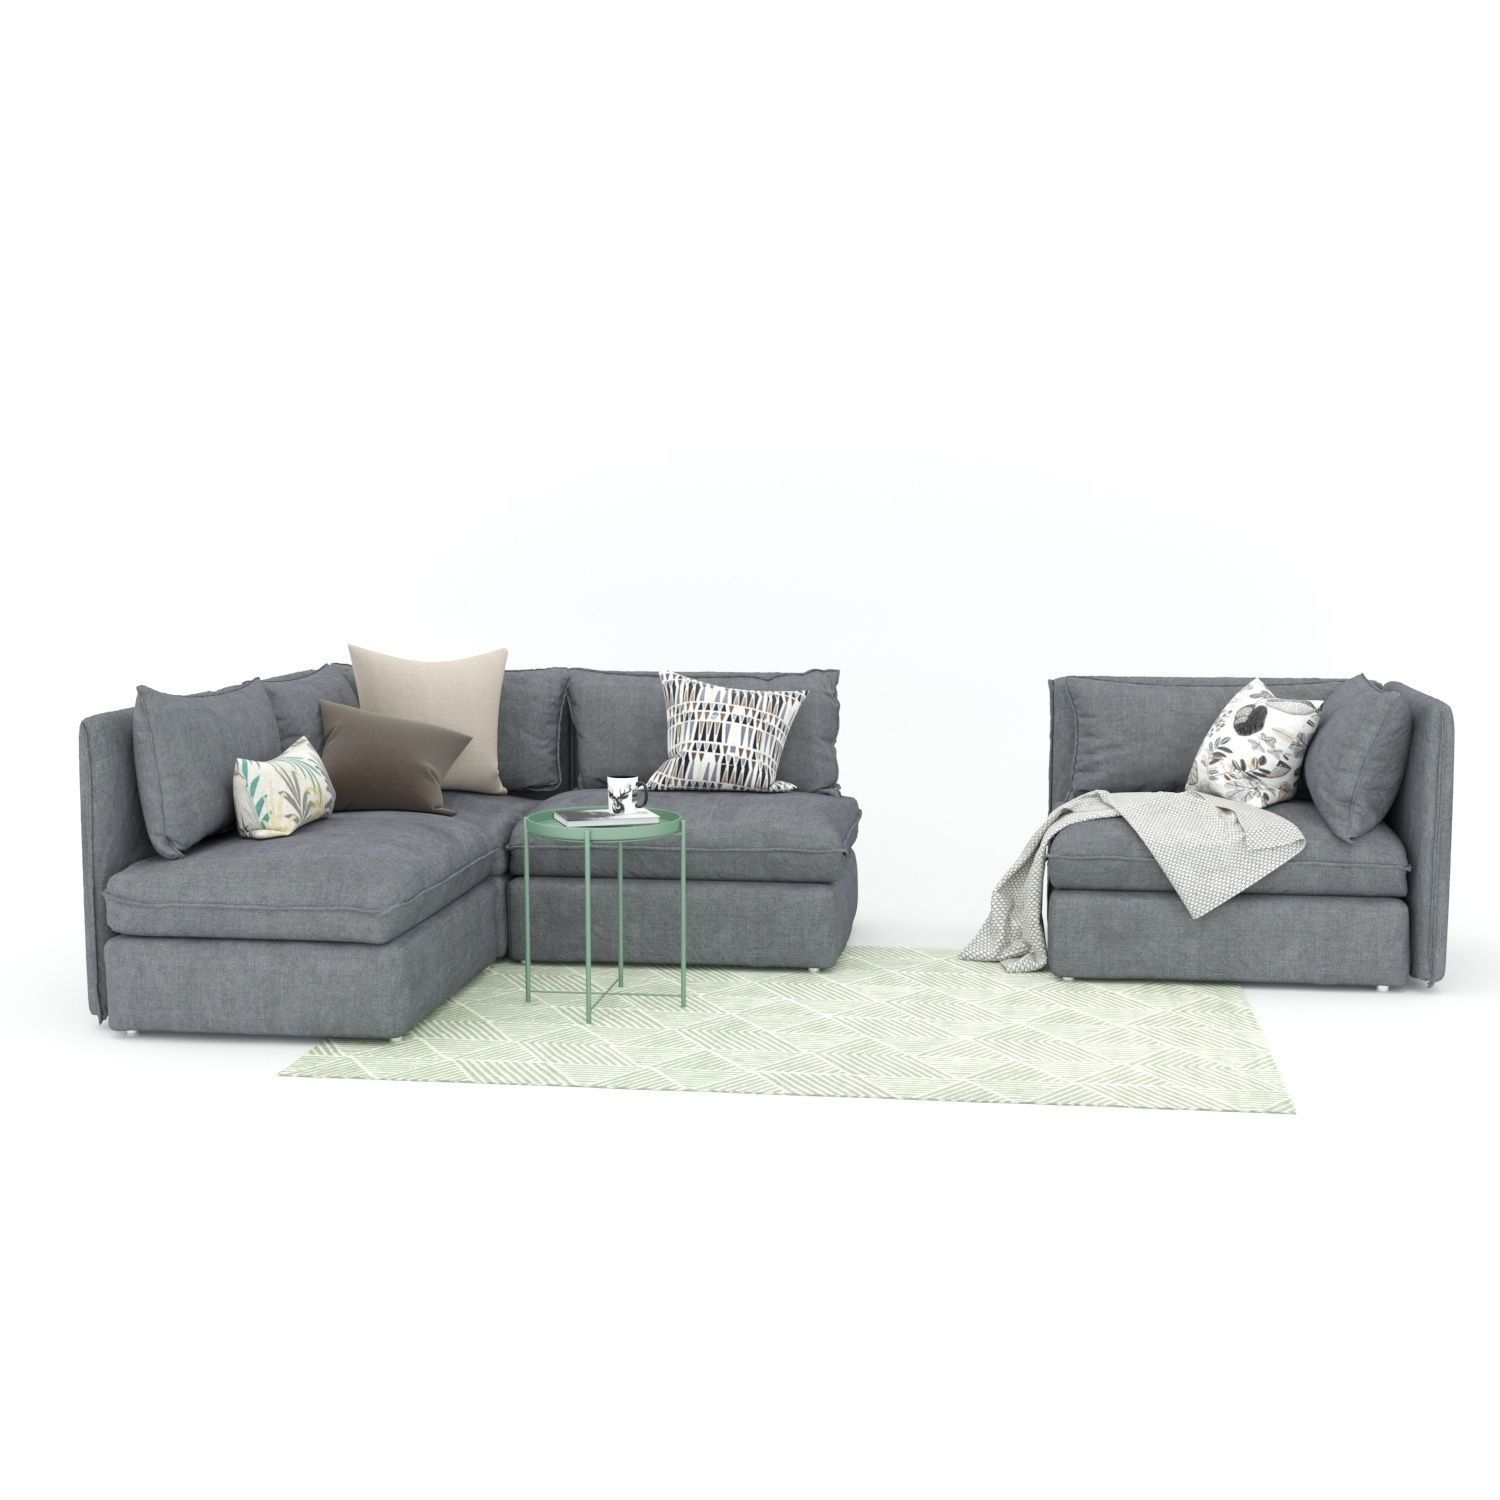 3d Ikea Vallentuna Sofa And Armchair Cgtrader